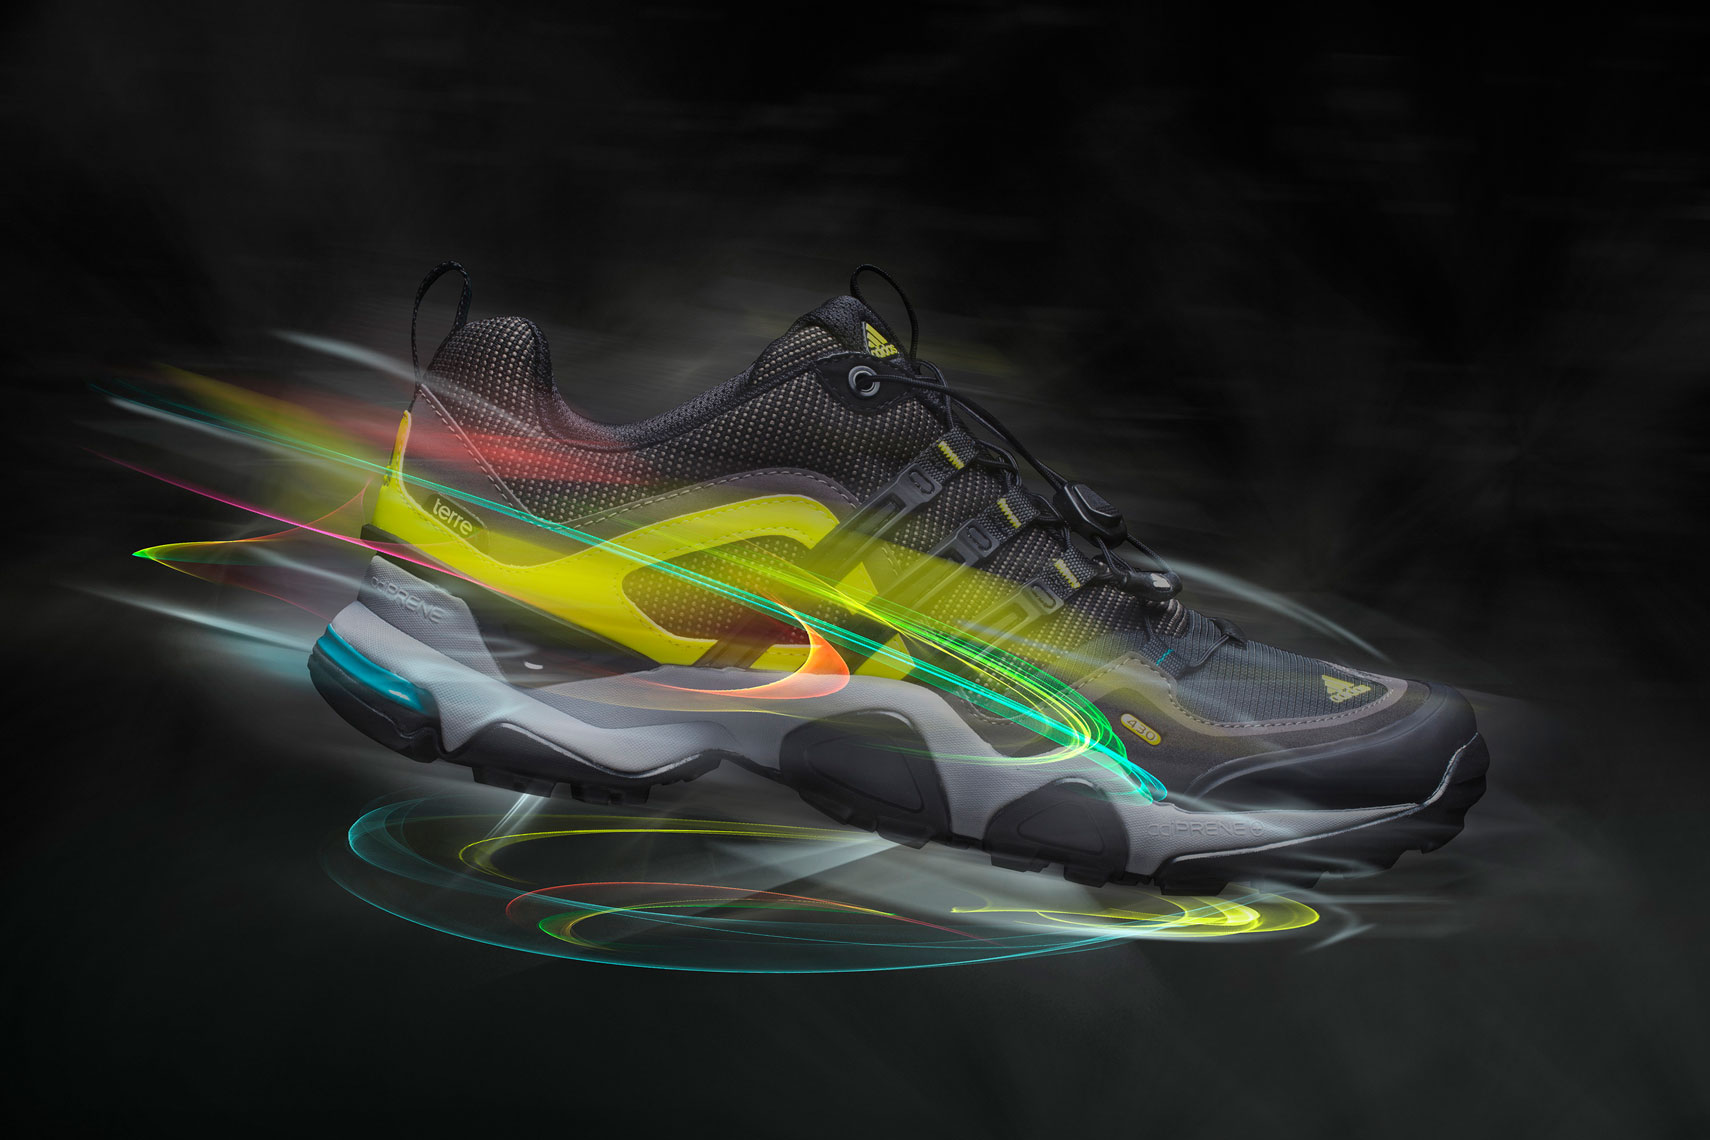 Product Photography Gear Addidas Terre X Shoes Profile Floating with Glowing Light Trails